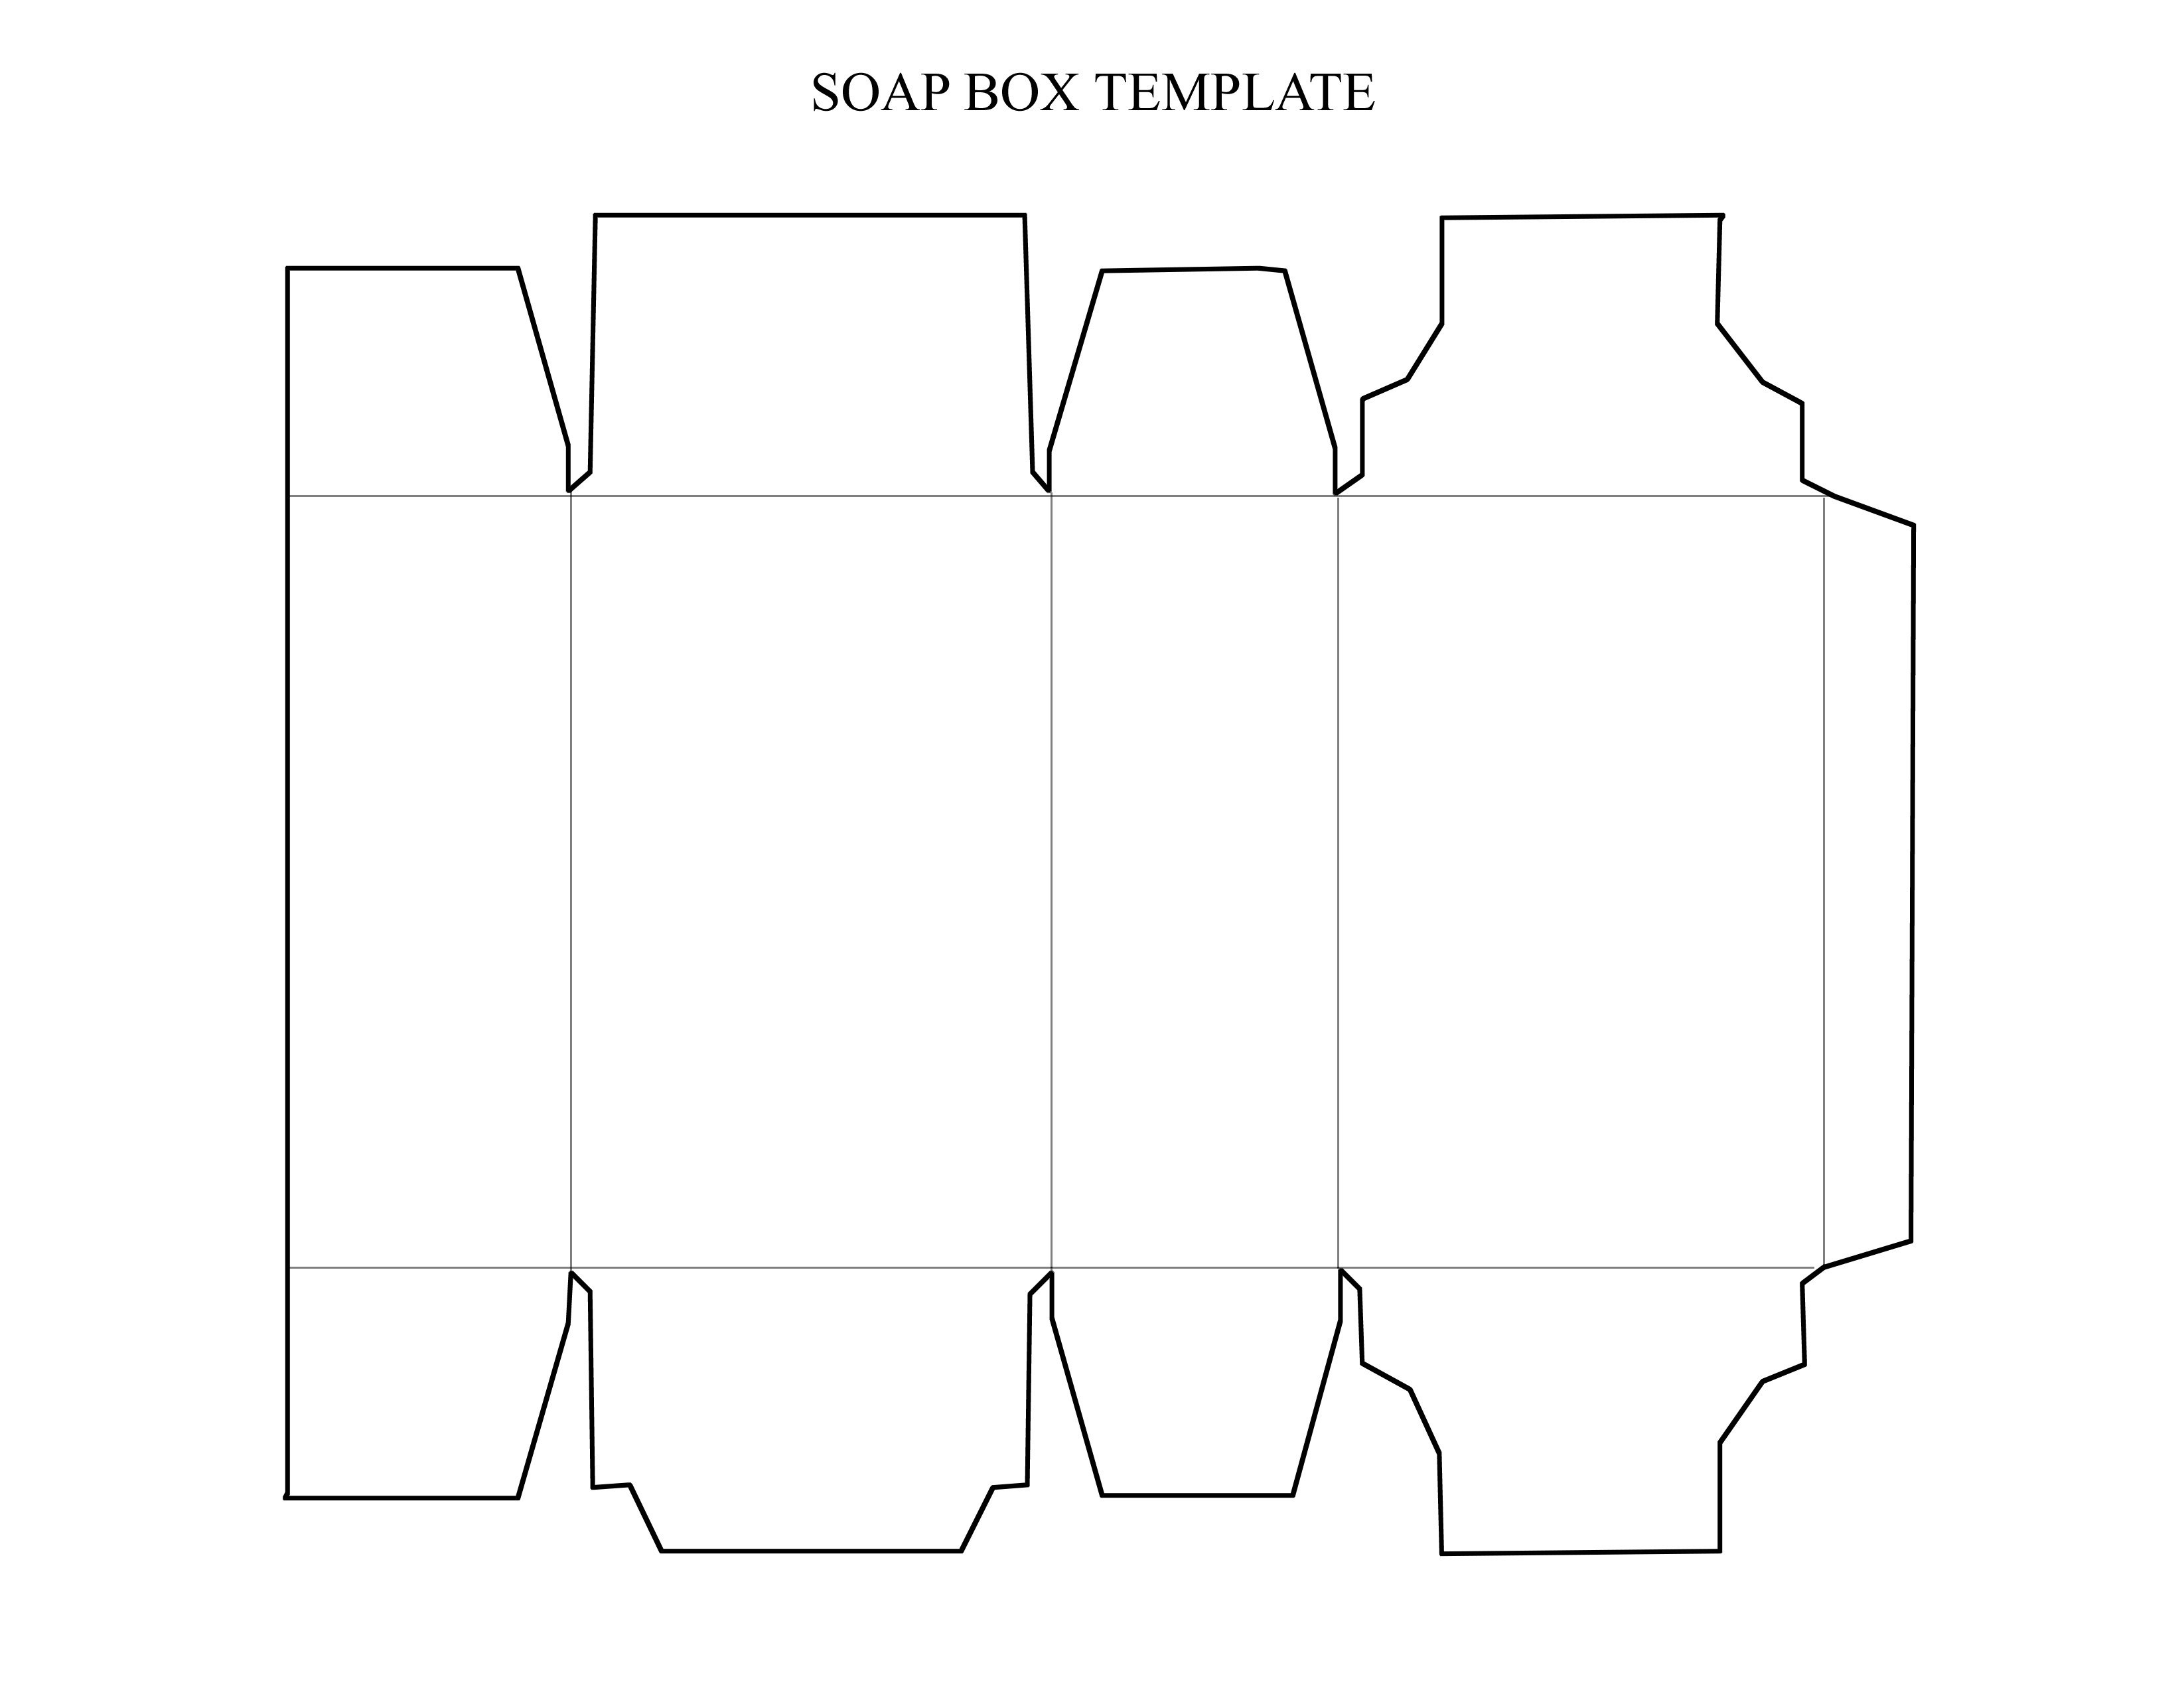 Template Ideas Box Design Templates Free How To Make Businesss With Regard To Business In A Box Templates